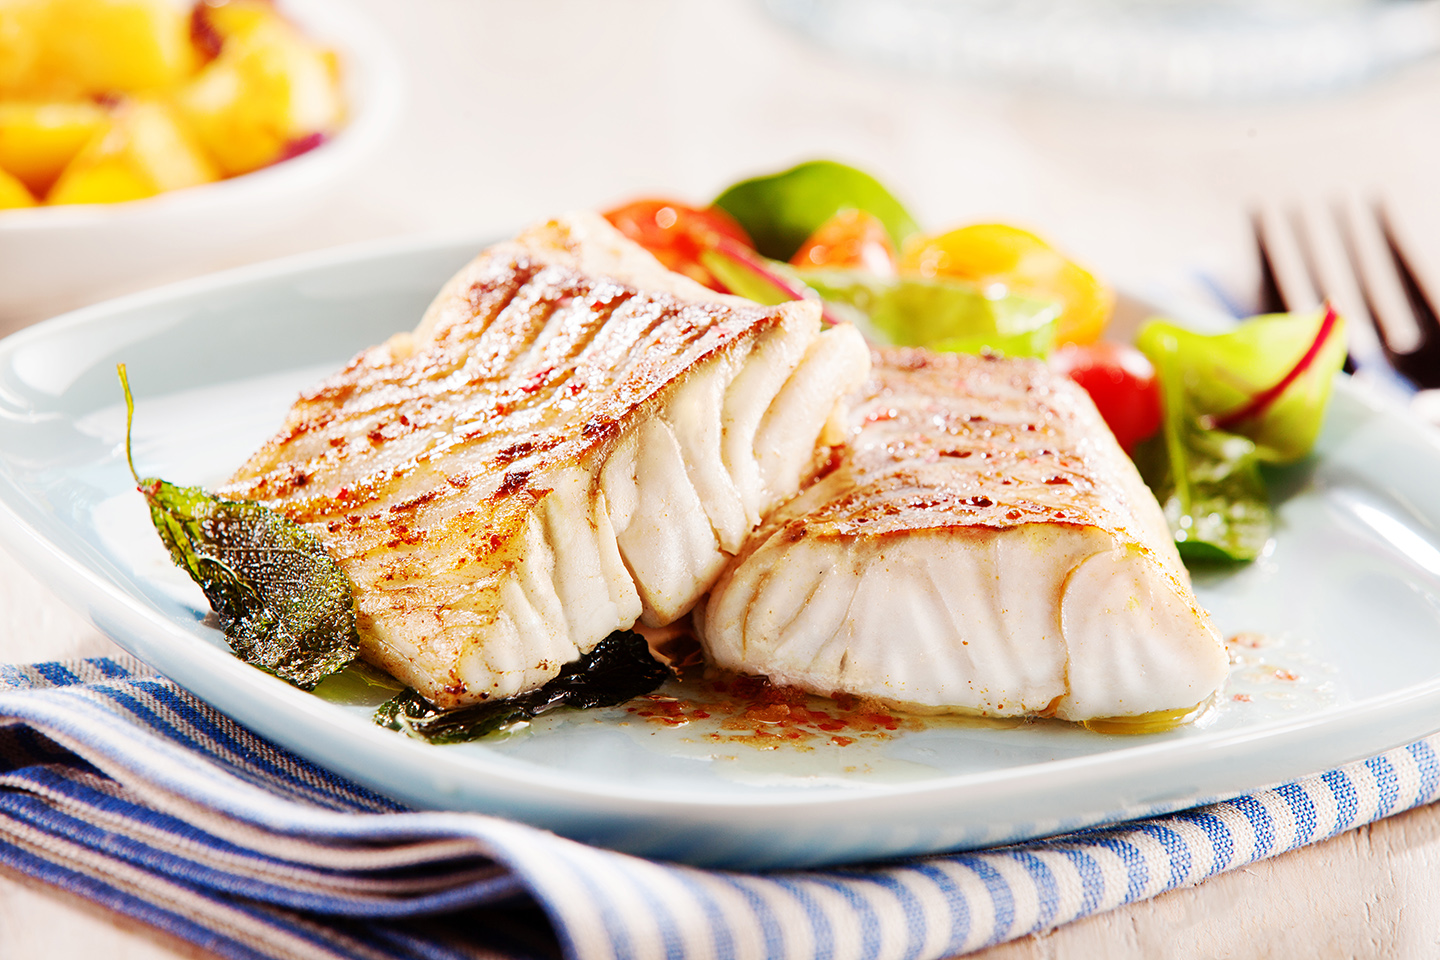 A healthy meal of grilled fish and vegetables served on a while place on a table